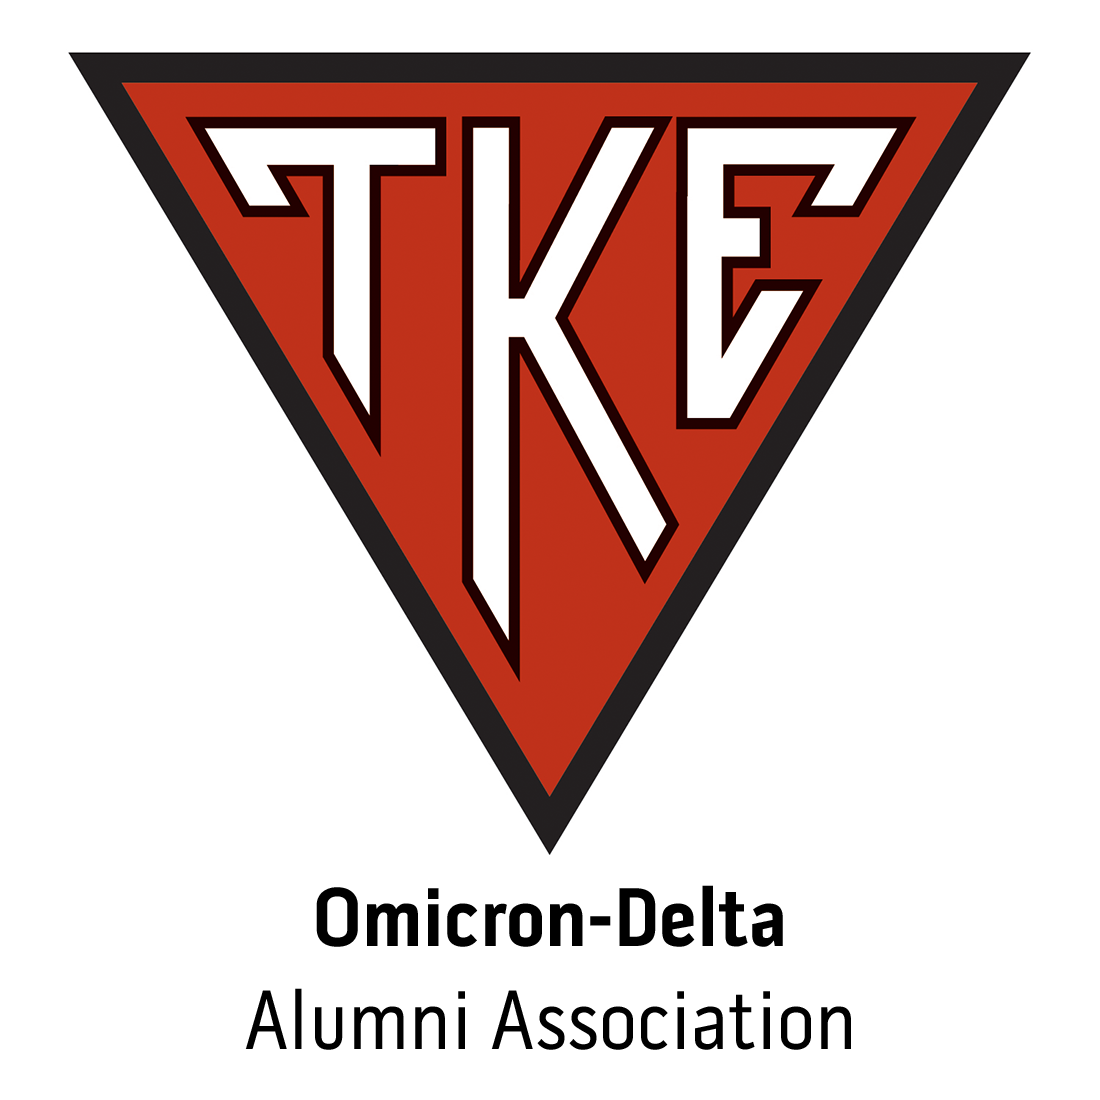 Omicron-Delta Alumni Association at University of North Carolina at Pembroke